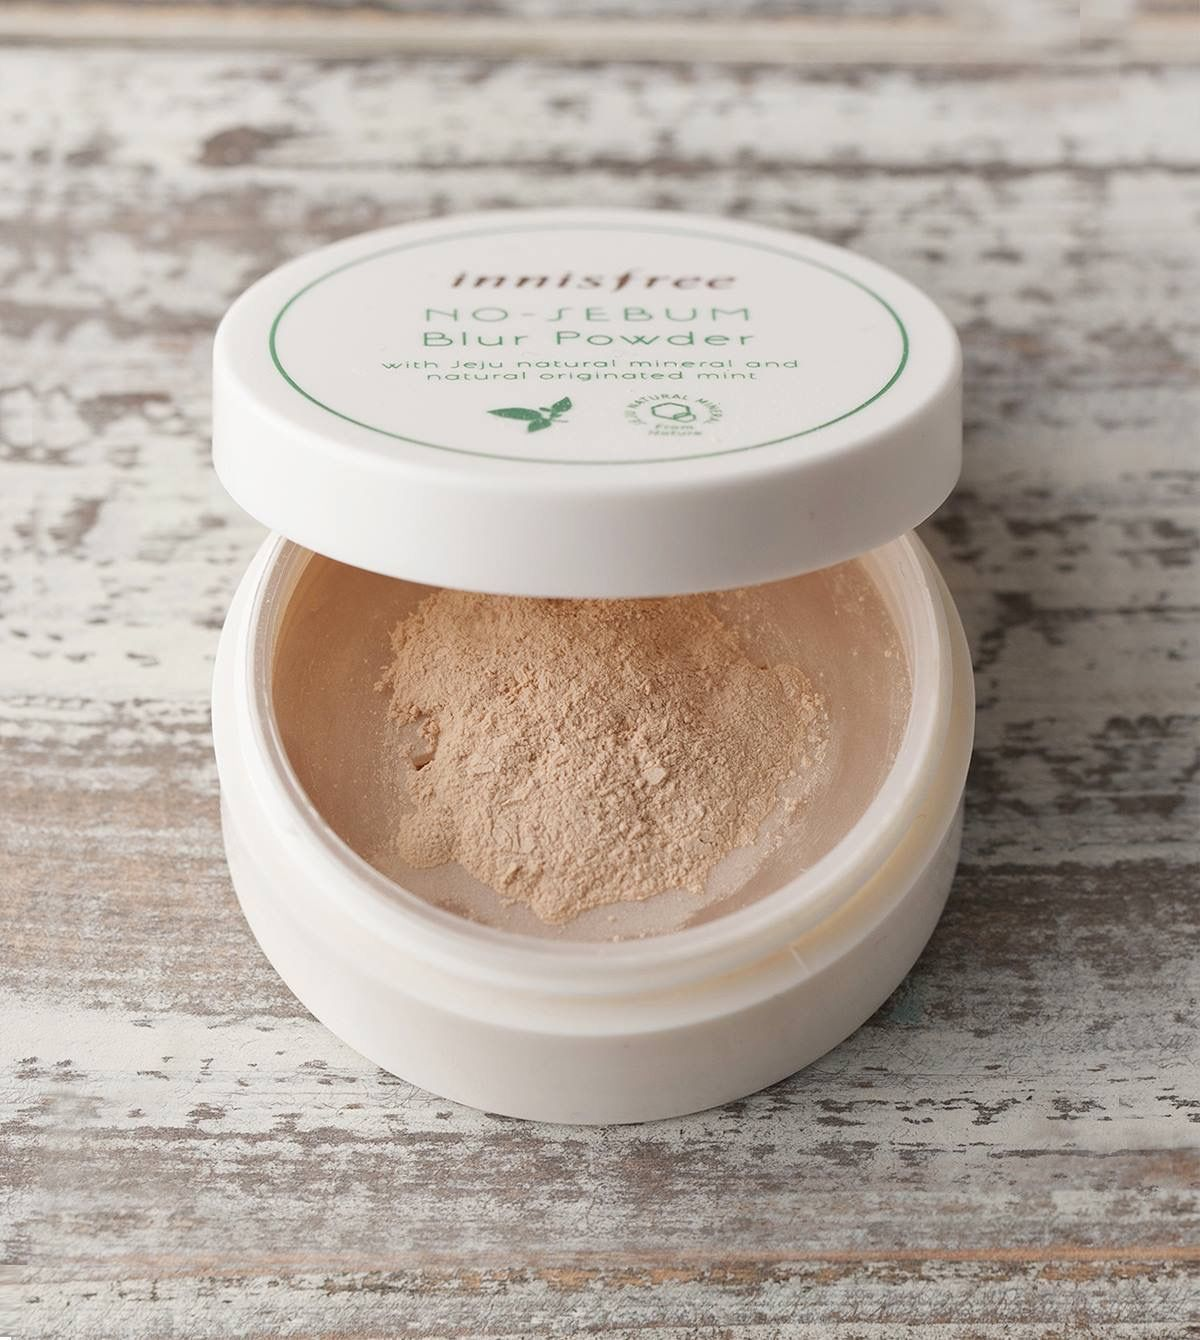 Please check this out about Innisfree Compact & Powder 🍃🍃  ➡️ Benefit of item:  2: No sebum blur powder 5g 🌸( 12.00 USD )🌸It allows for the skin texture to appear healthy and feeling smooth by providing a look for natural makeup with natural beige color pigments that are suited for any type of skin.  💁🏼If you are interesting with all of this items please make a pre-order with us !✈️✈️